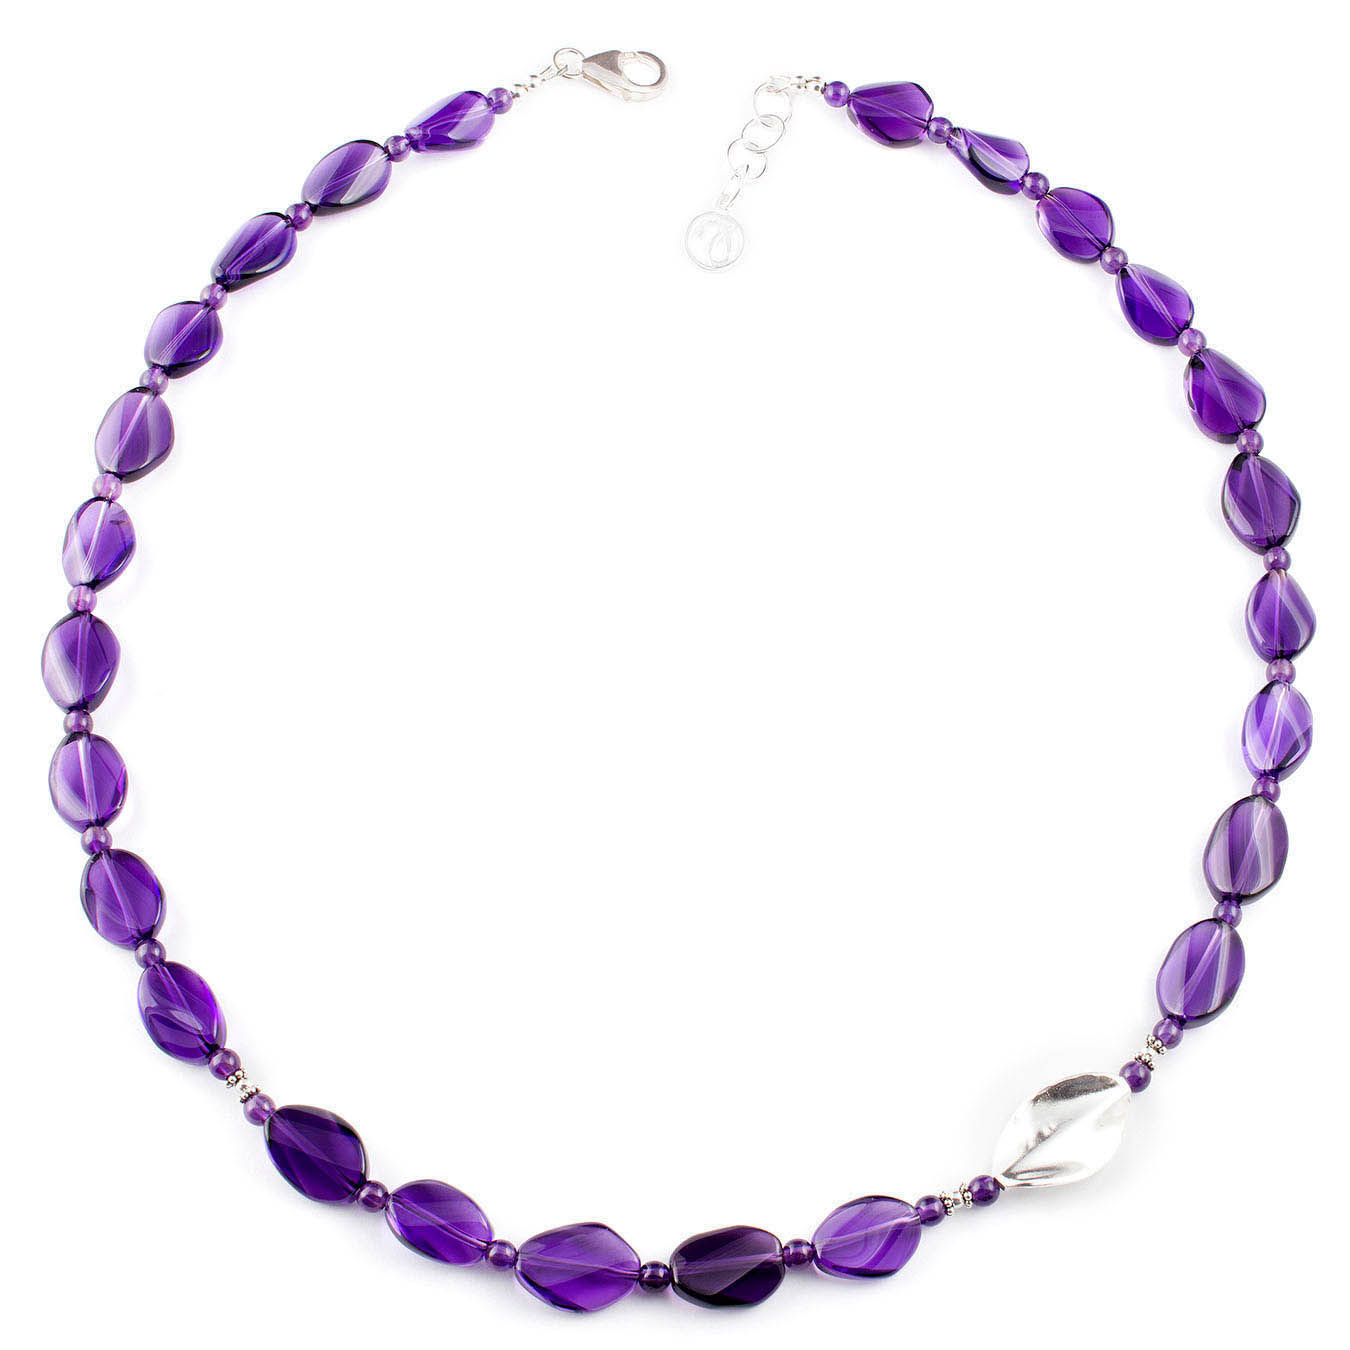 Handmade jewelry necklace made of amethyst and twisted thai silver